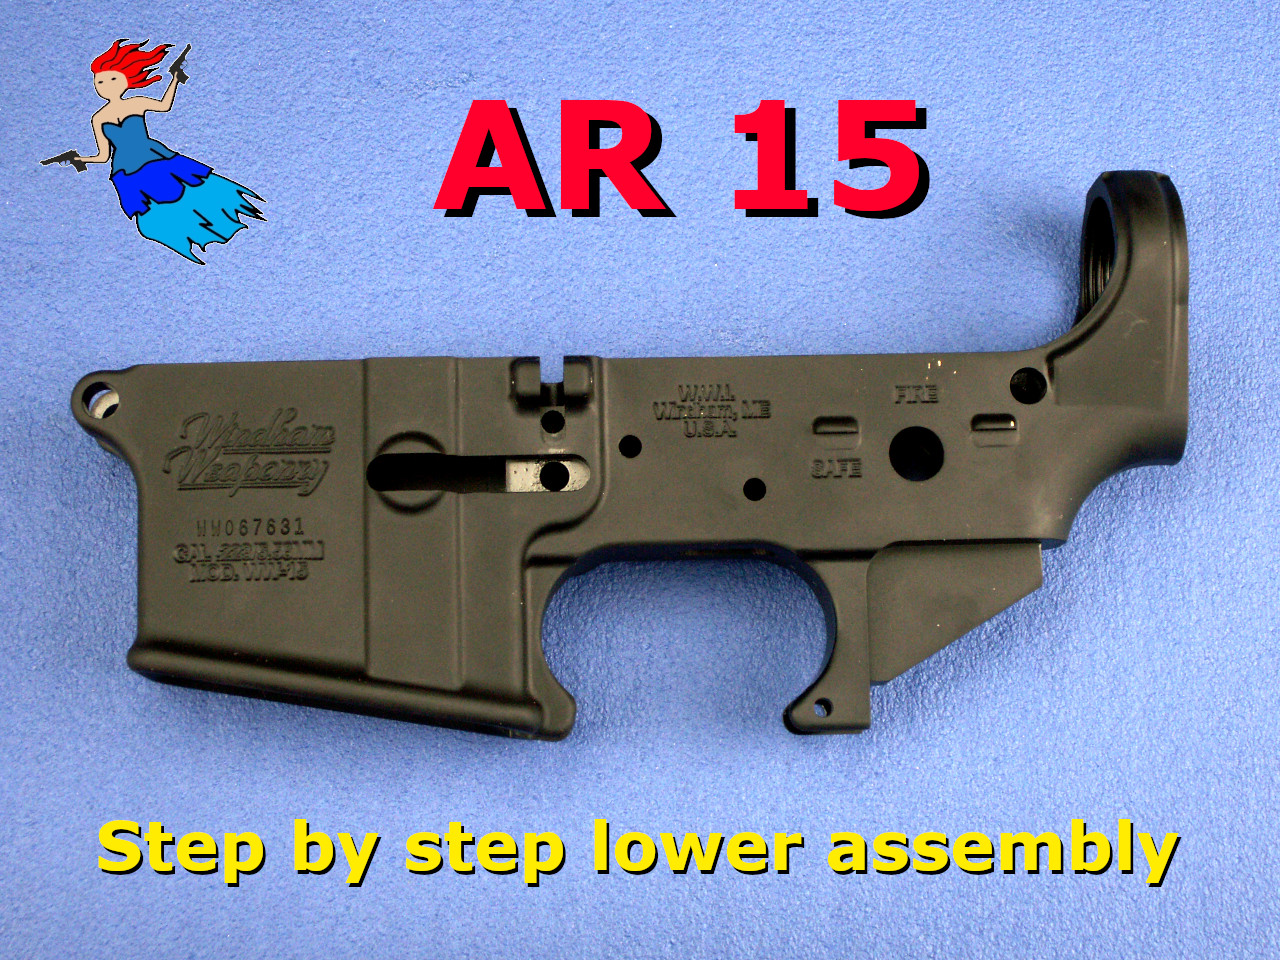 AR 15 lower receiver assembly video